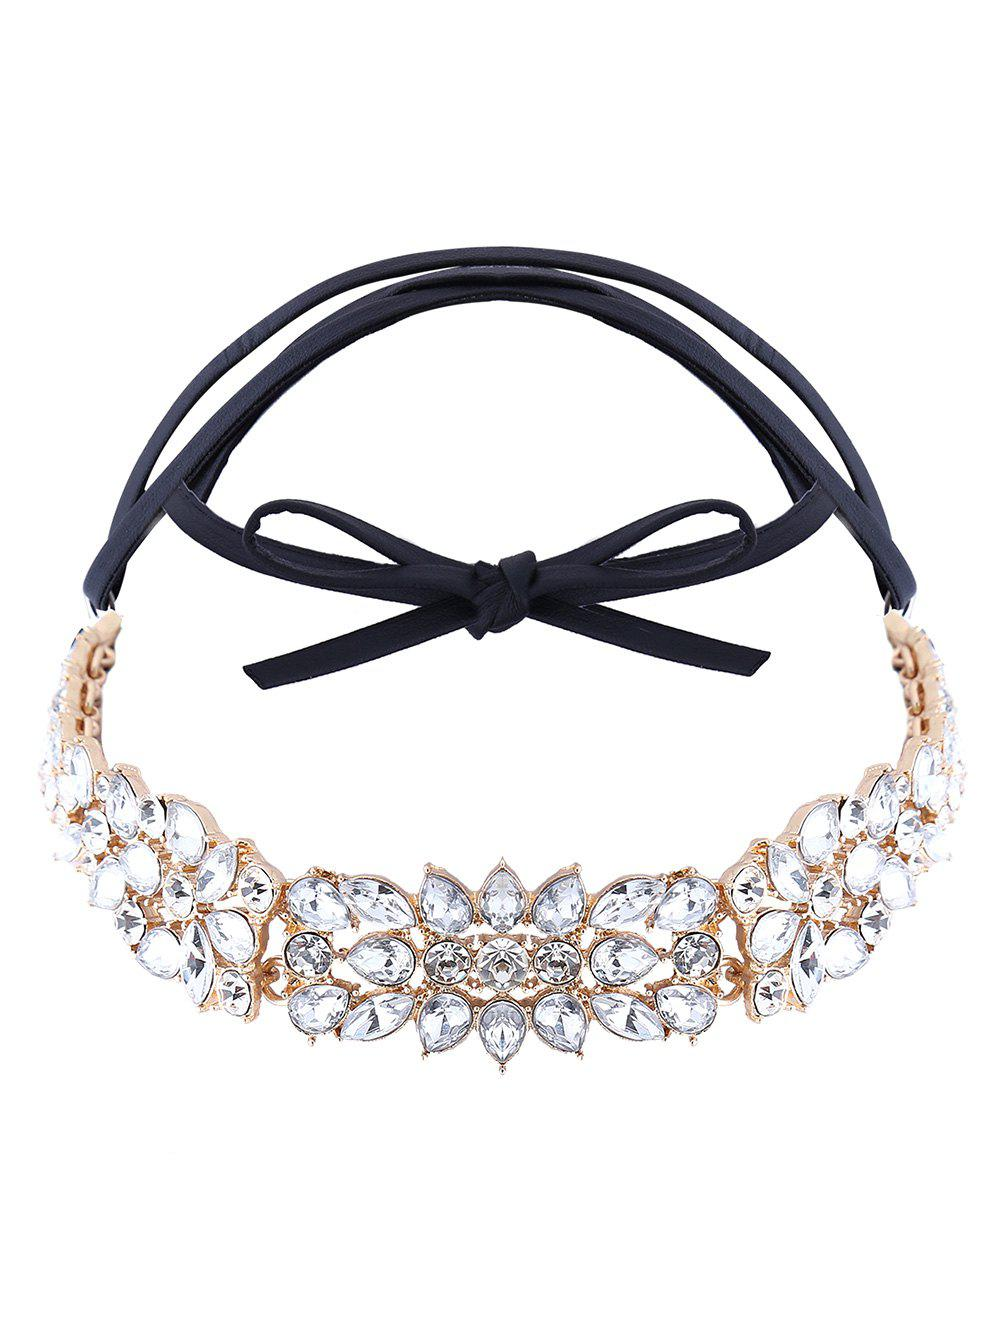 Artificial Leather Rhinestone Choker Necklace - GOLDEN